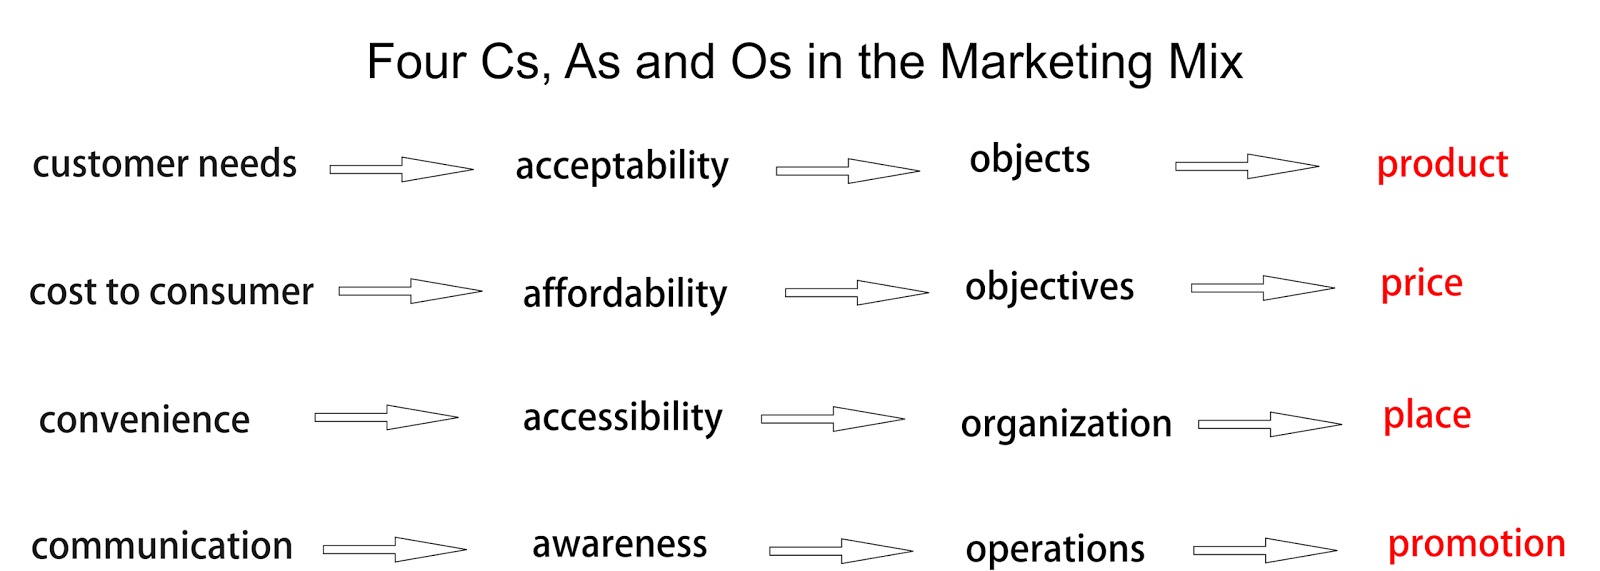 marketing mix literature review and The aim of this chapter is to frame the research topic, in the larger context of international marketing (im) as a field of study at first (chapter 21), and in the narrower area of marketing-mix.